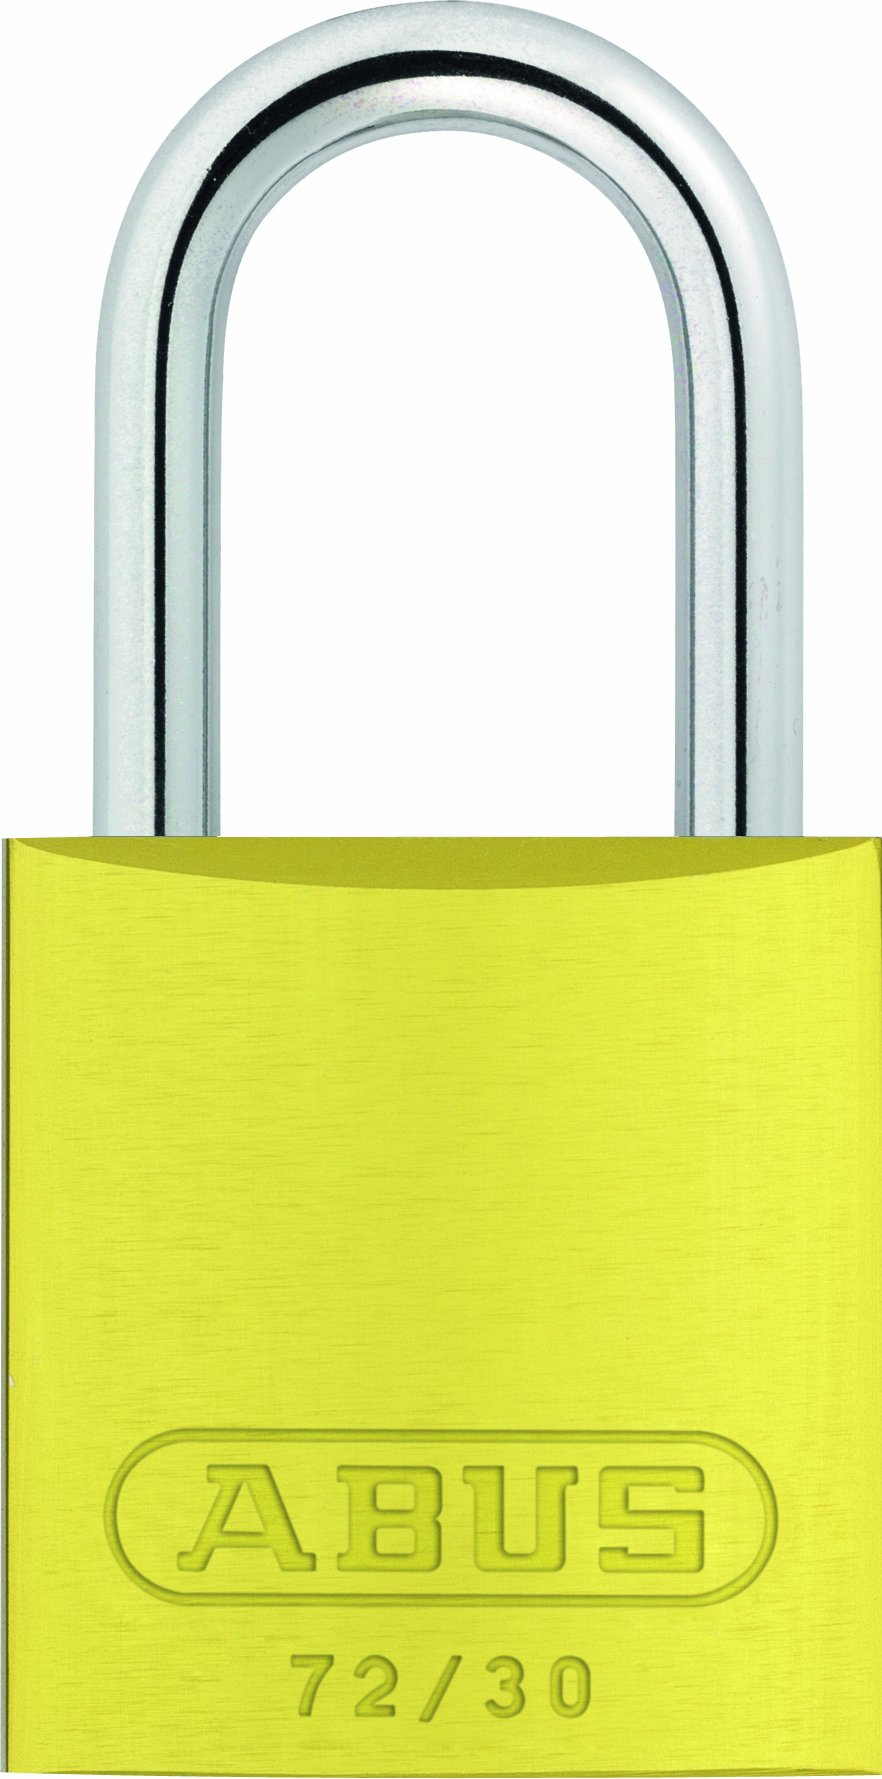 ABUS 72/30 KA Safety Lockout Aluminum Keyed Alike Padlock, Yellow